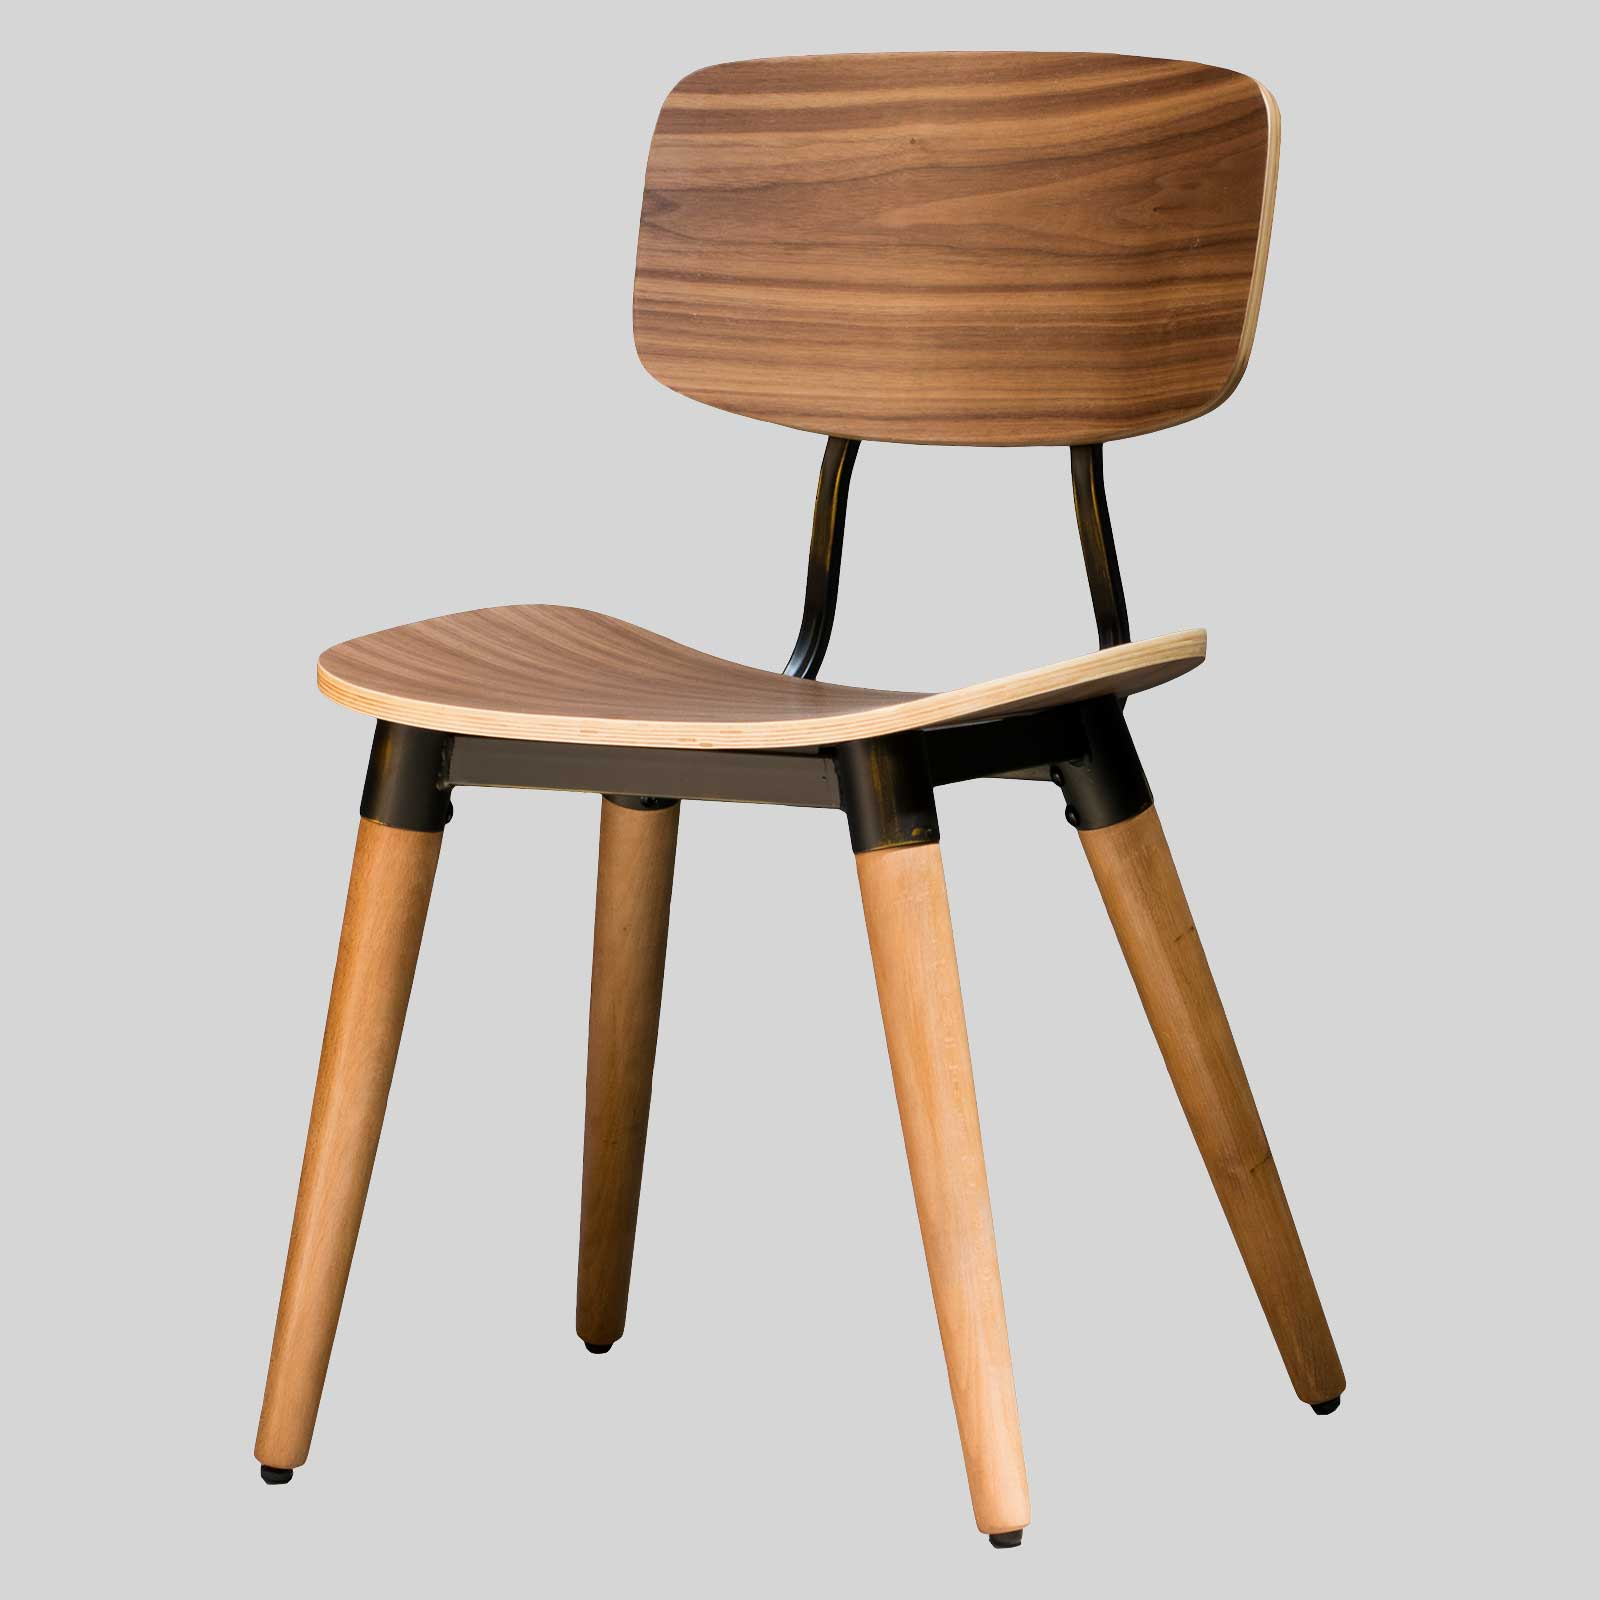 Retro dining chairs for cafes concept collections